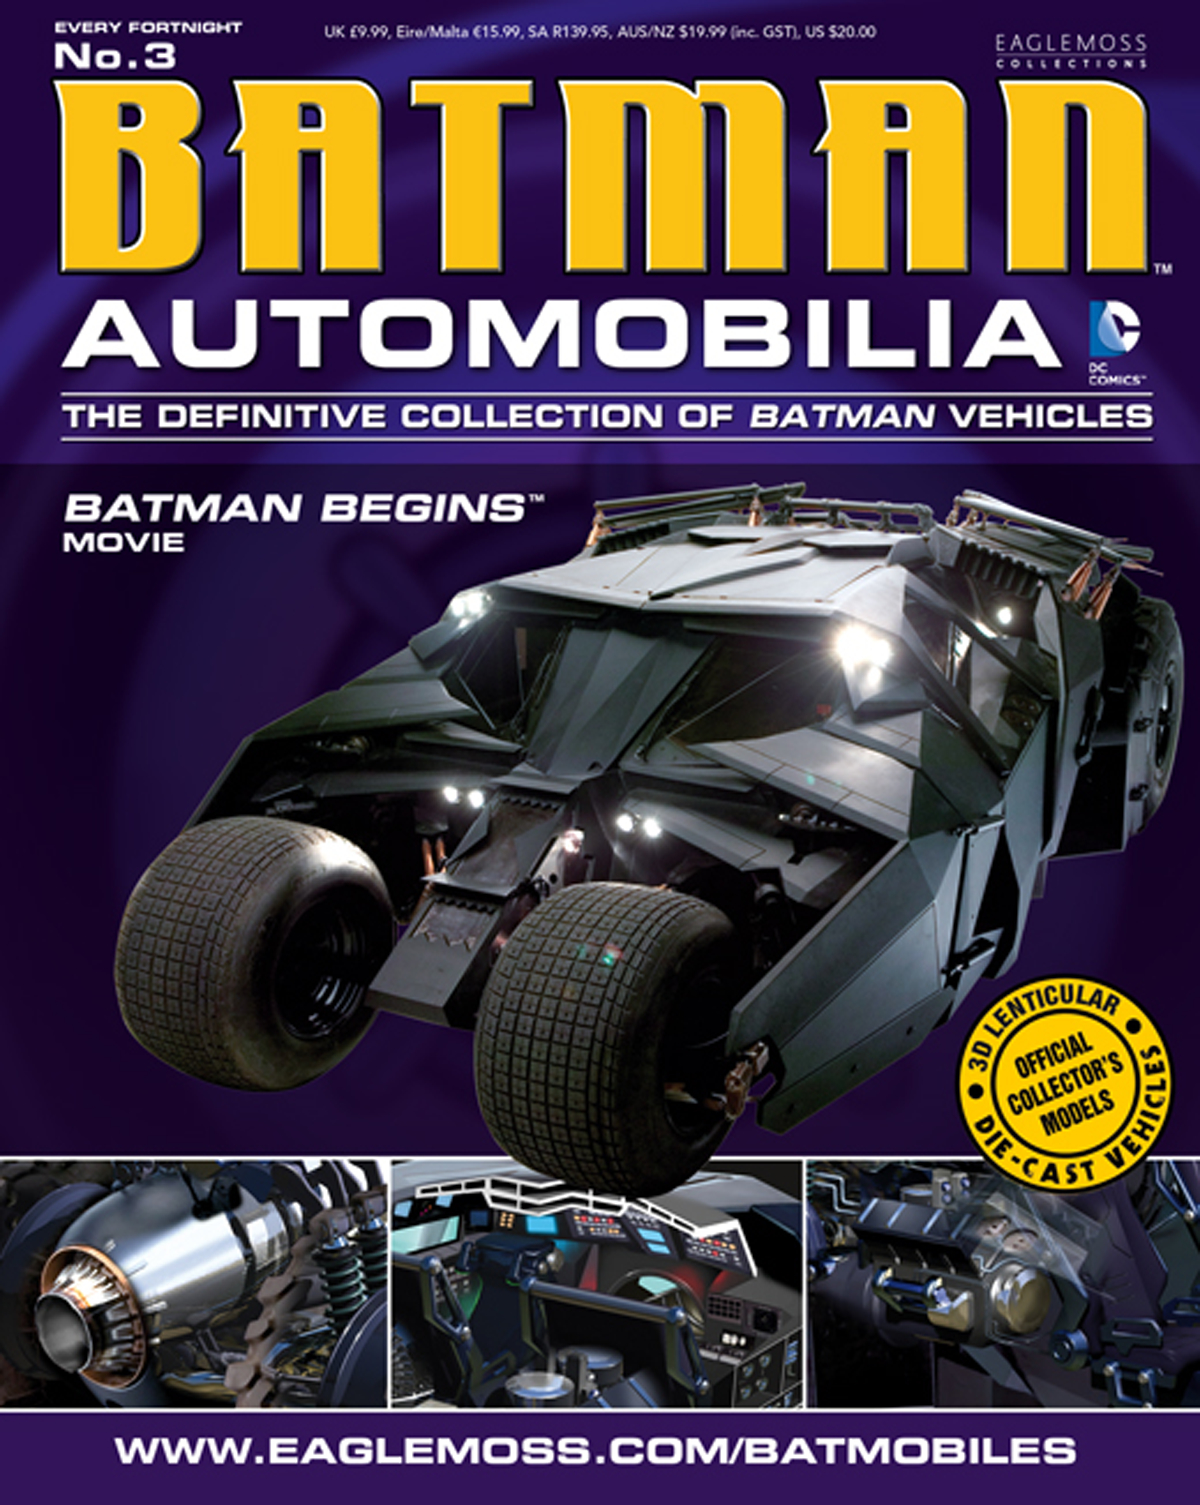 DC BATMAN AUTO FIG MAG #3 2005 BATMAN BEGINS BATMOBILE